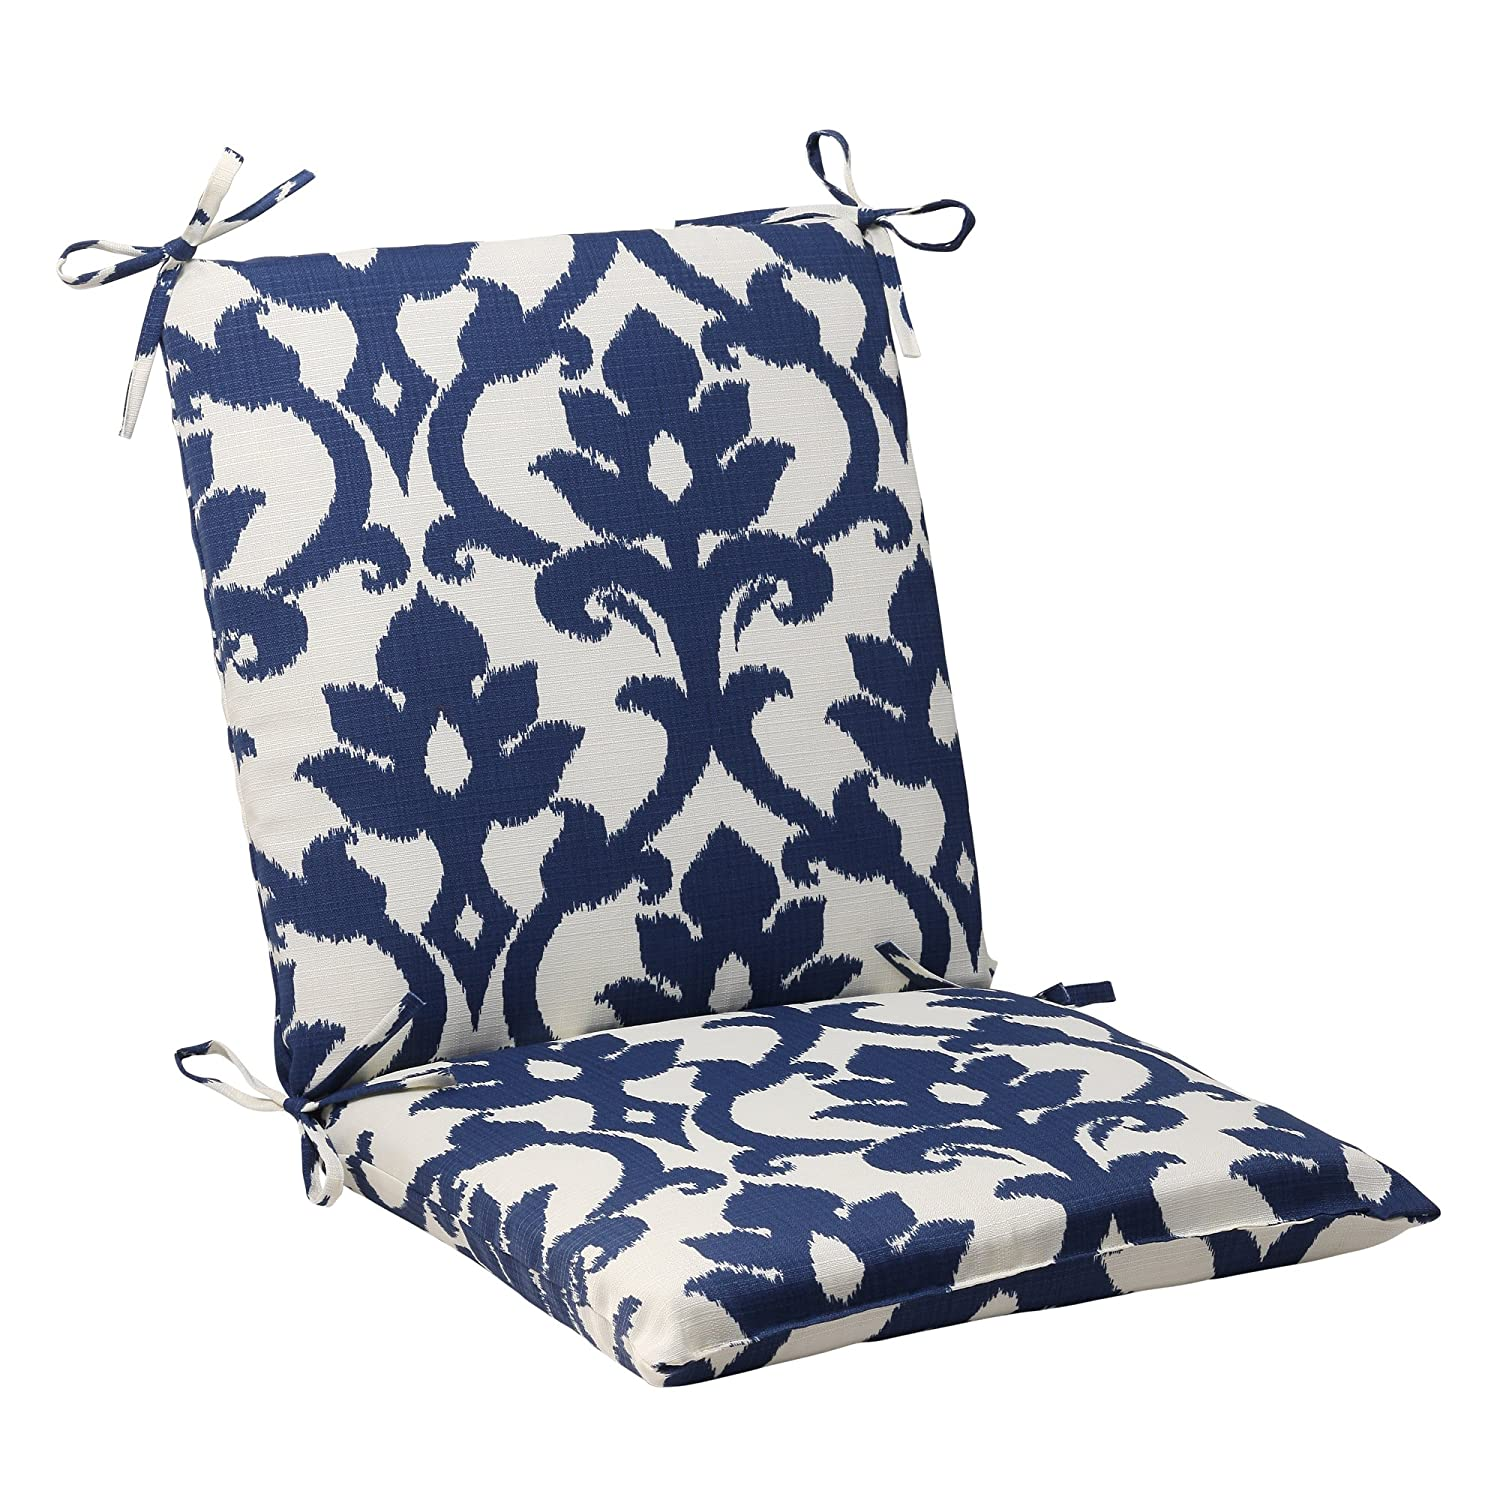 Pillow Perfect Outdoor Bosco Squared Chair Cushion, Navy